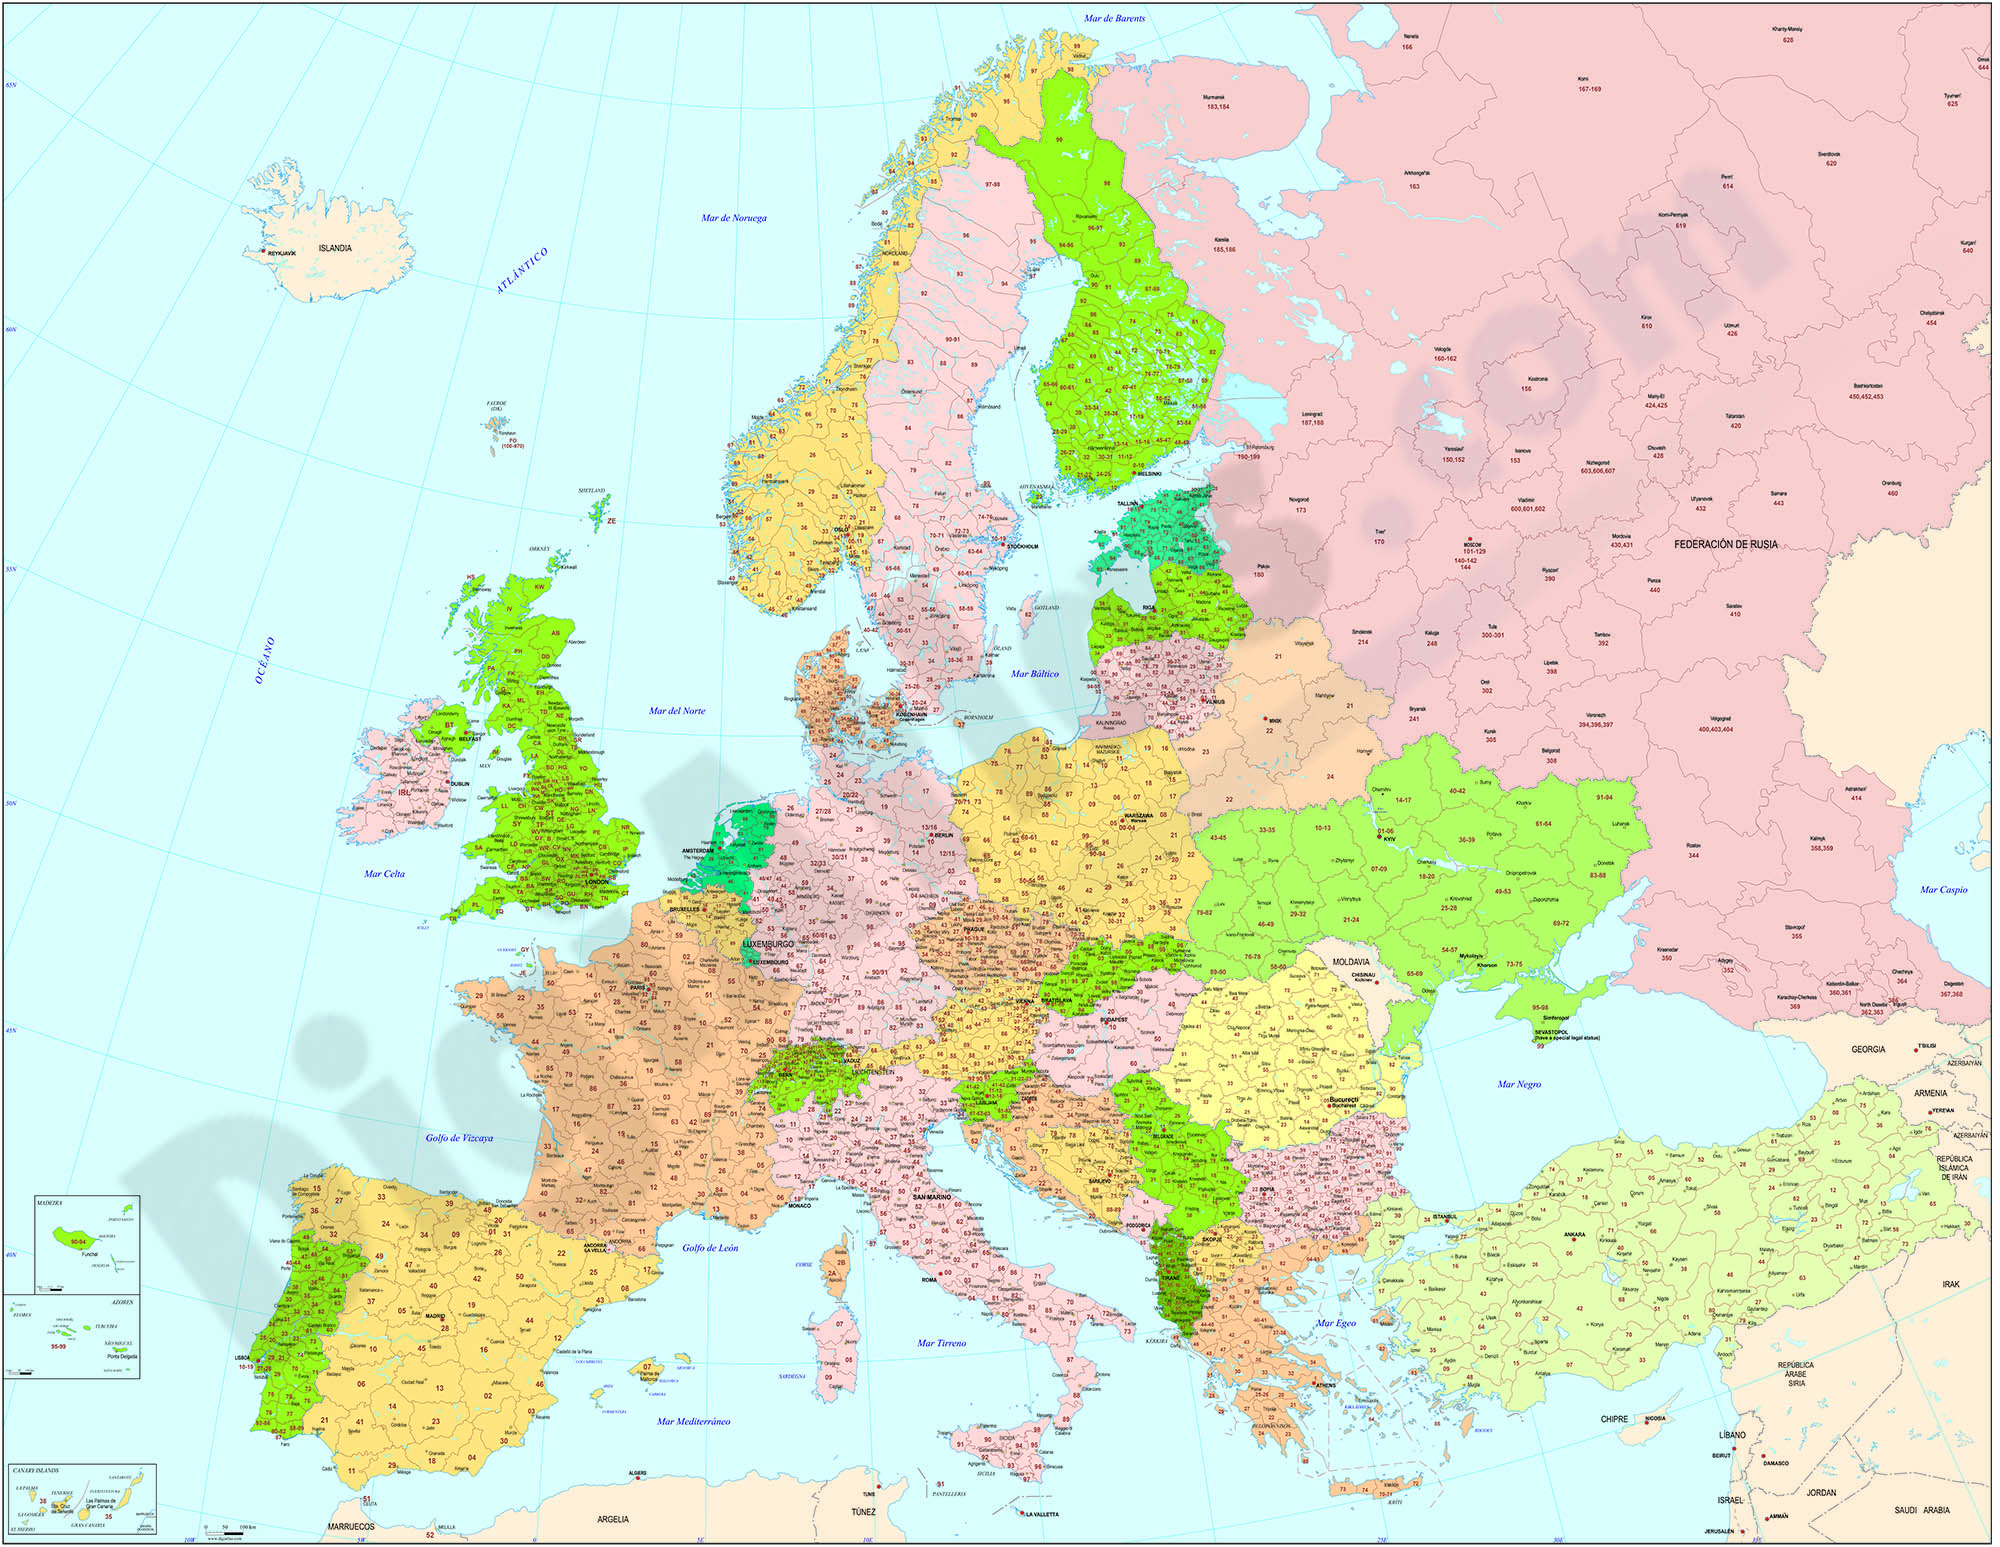 Map of Europe with 2-digit postal codes